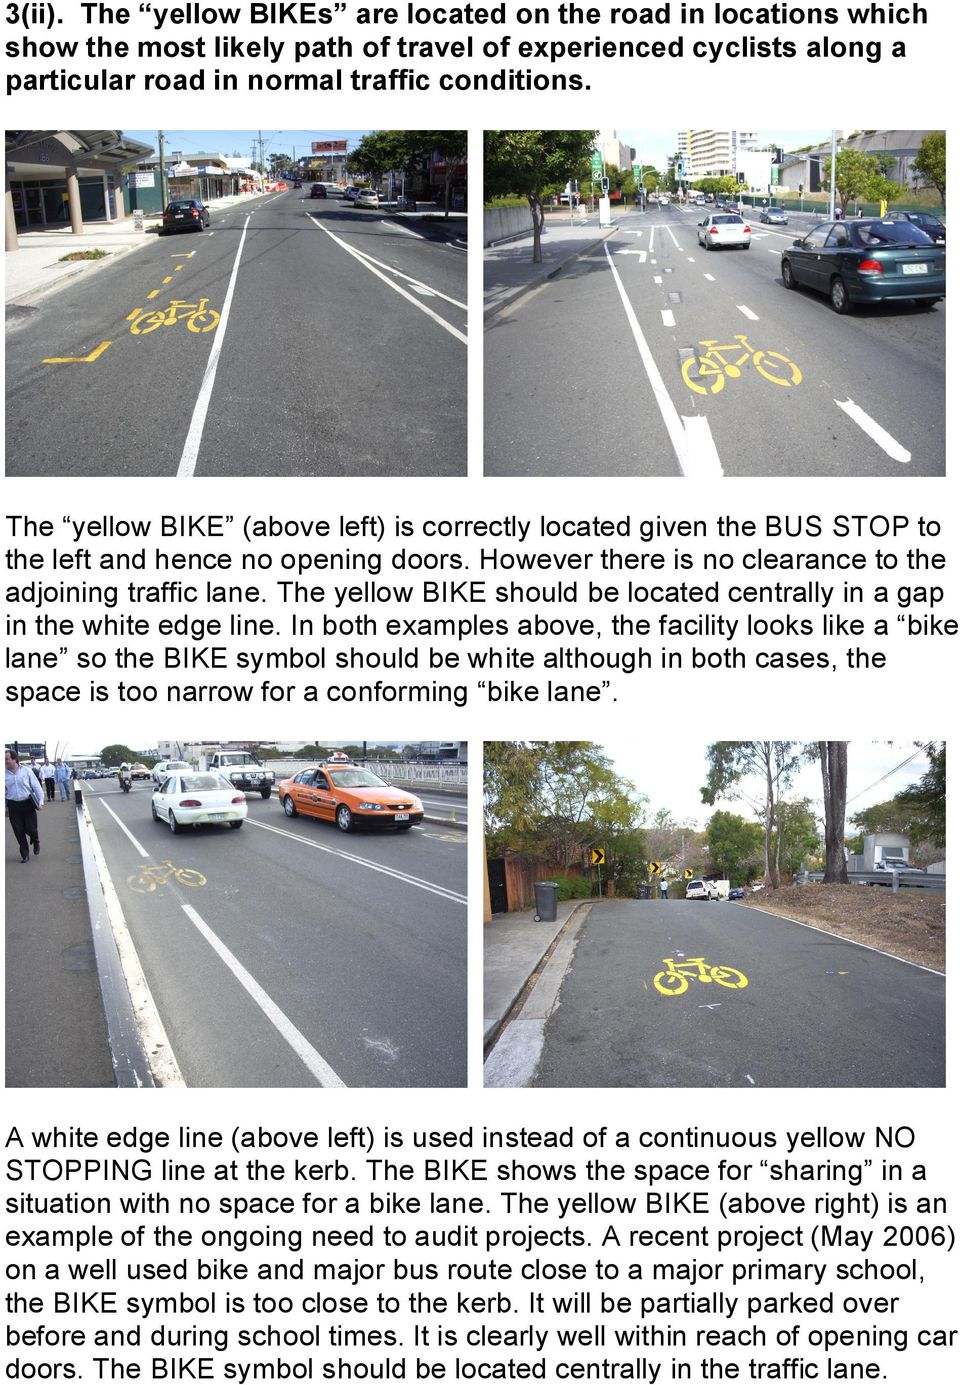 The yellow BIKE should be located centrally in a gap in the white edge line.